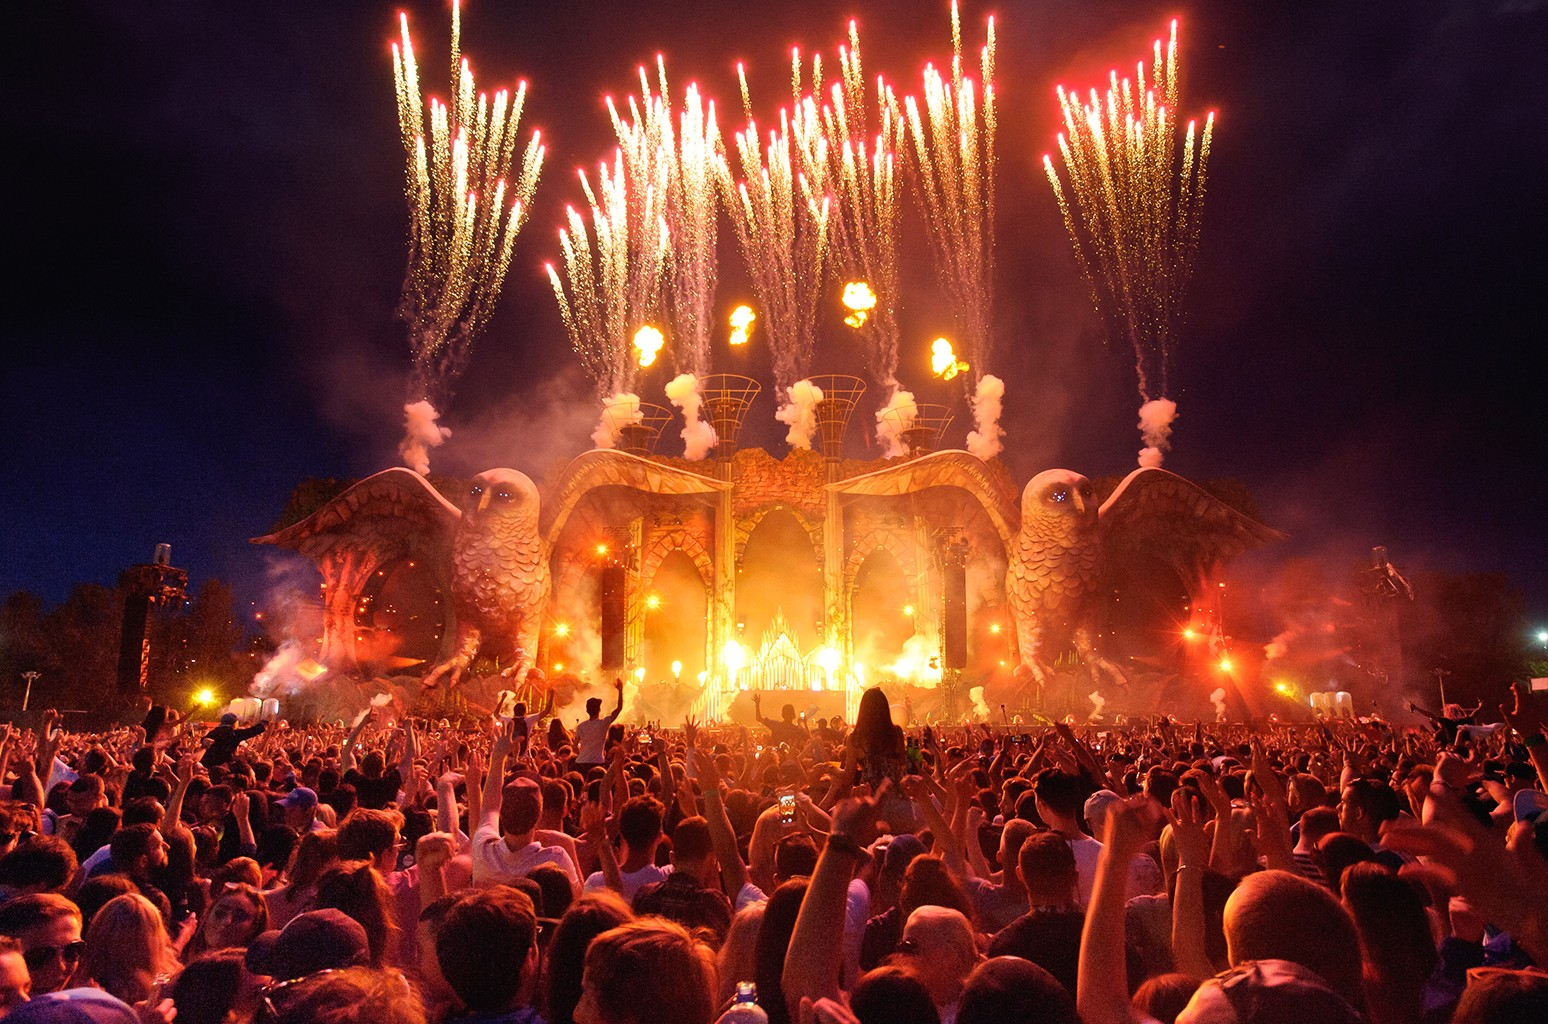 General view of the EDC UK kineticFIELD main stage at Milton Keynes Bowl on July 11, 2015 in Milton Keynes, England.